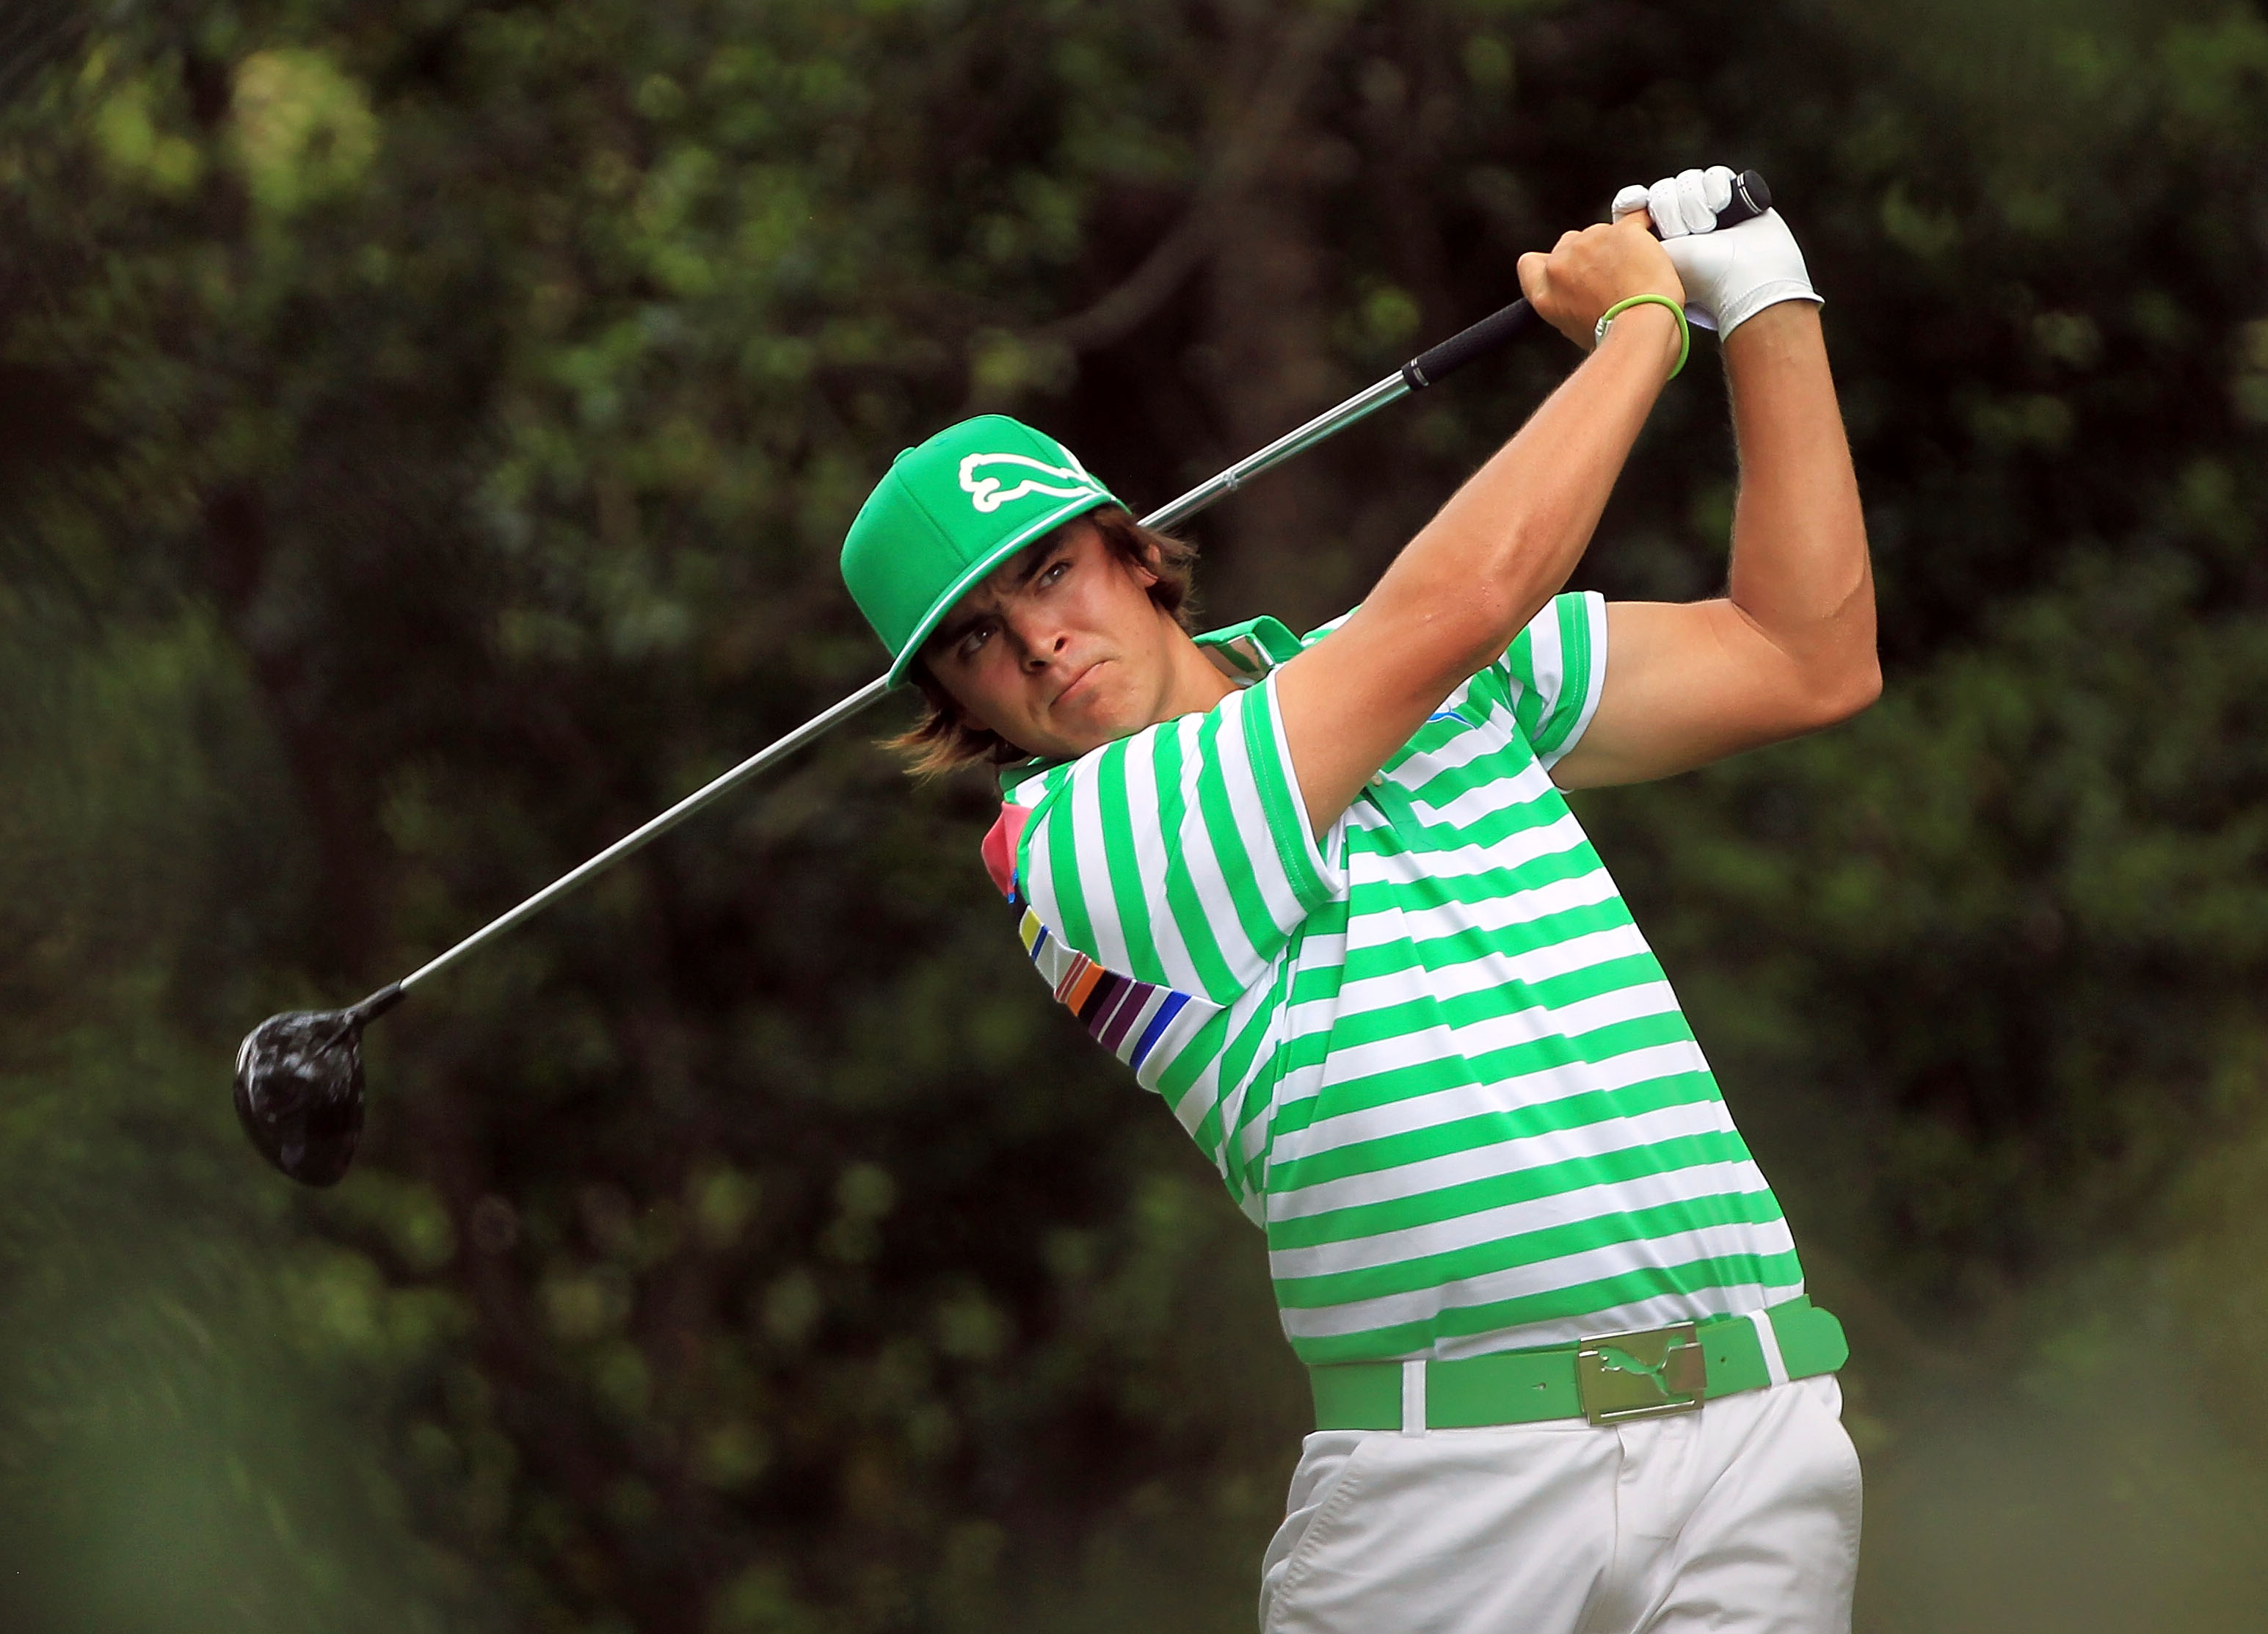 AUGUSTA, GA - APRIL 09:  Rickie Fowler watches his tee shot on the second hole during the third round of the 2011 Masters Tournament at Augusta National Golf Club on April 9, 2011 in Augusta, Georgia.  (Photo by David Cannon/Getty Images)